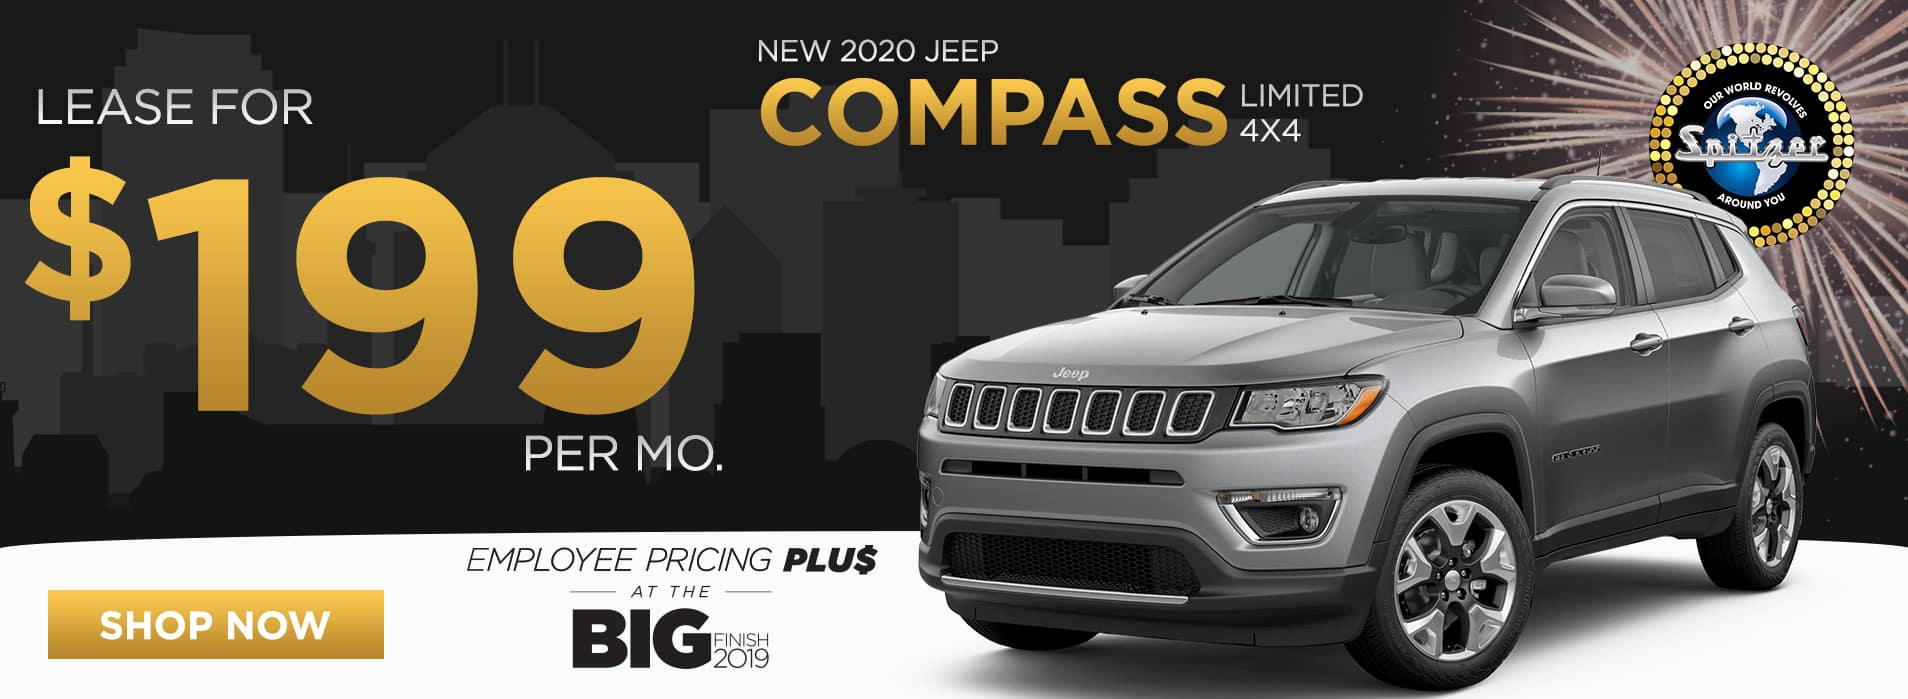 Compass | Lease for $199 per mo